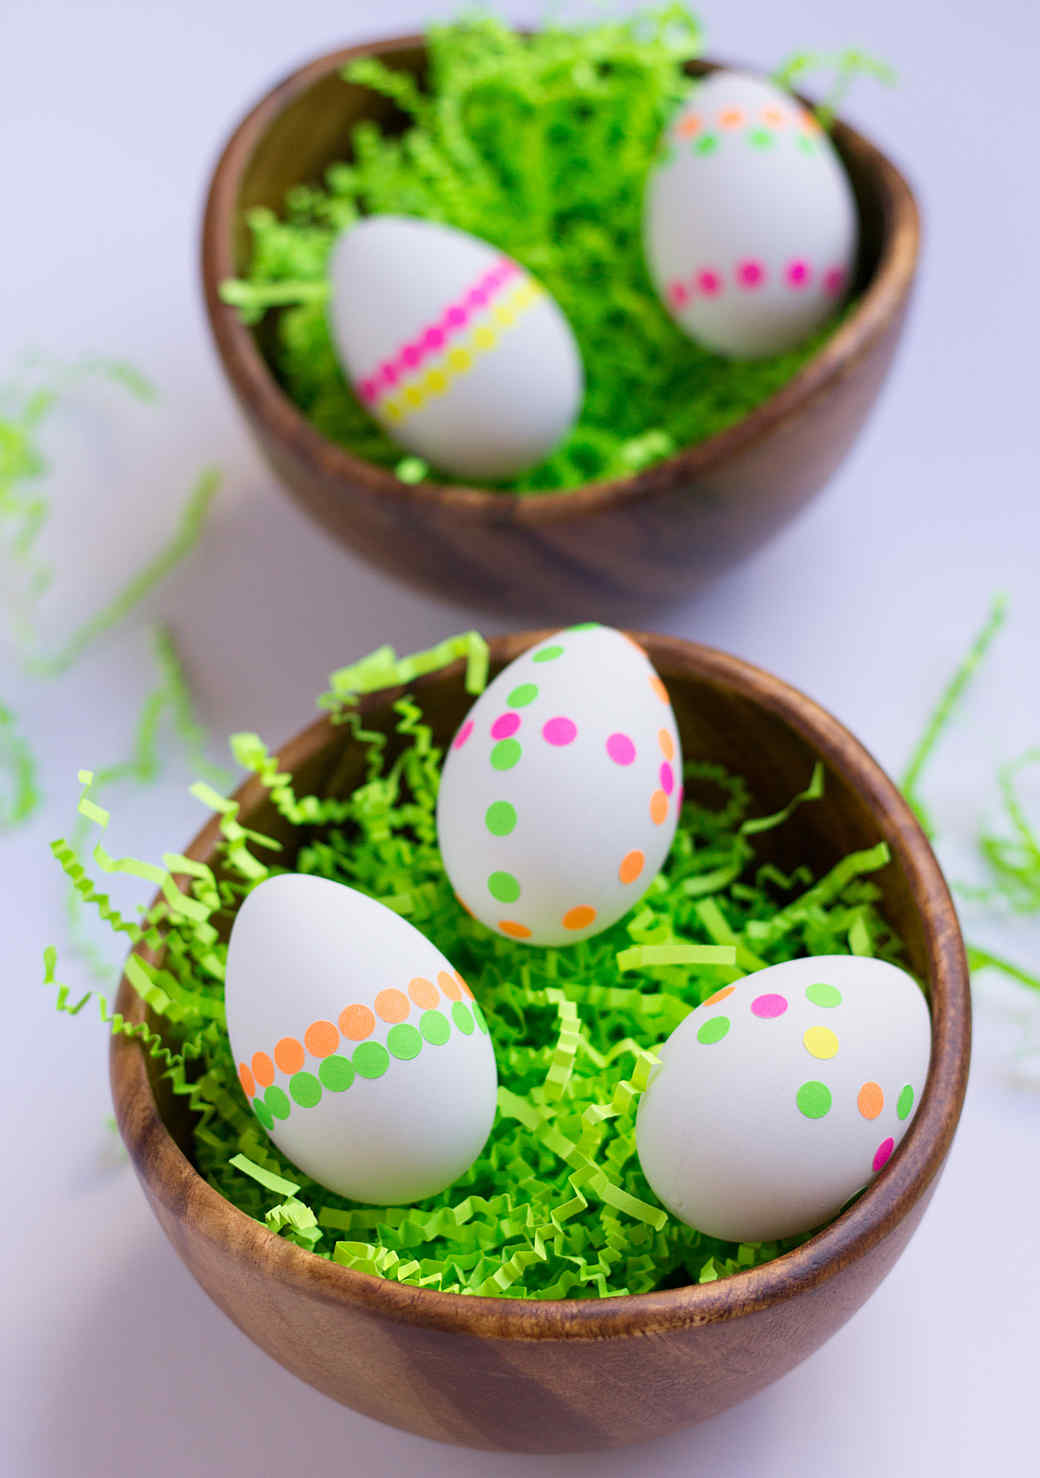 sticker-easter-eggs-1215-1.jpg (skyword:211143)